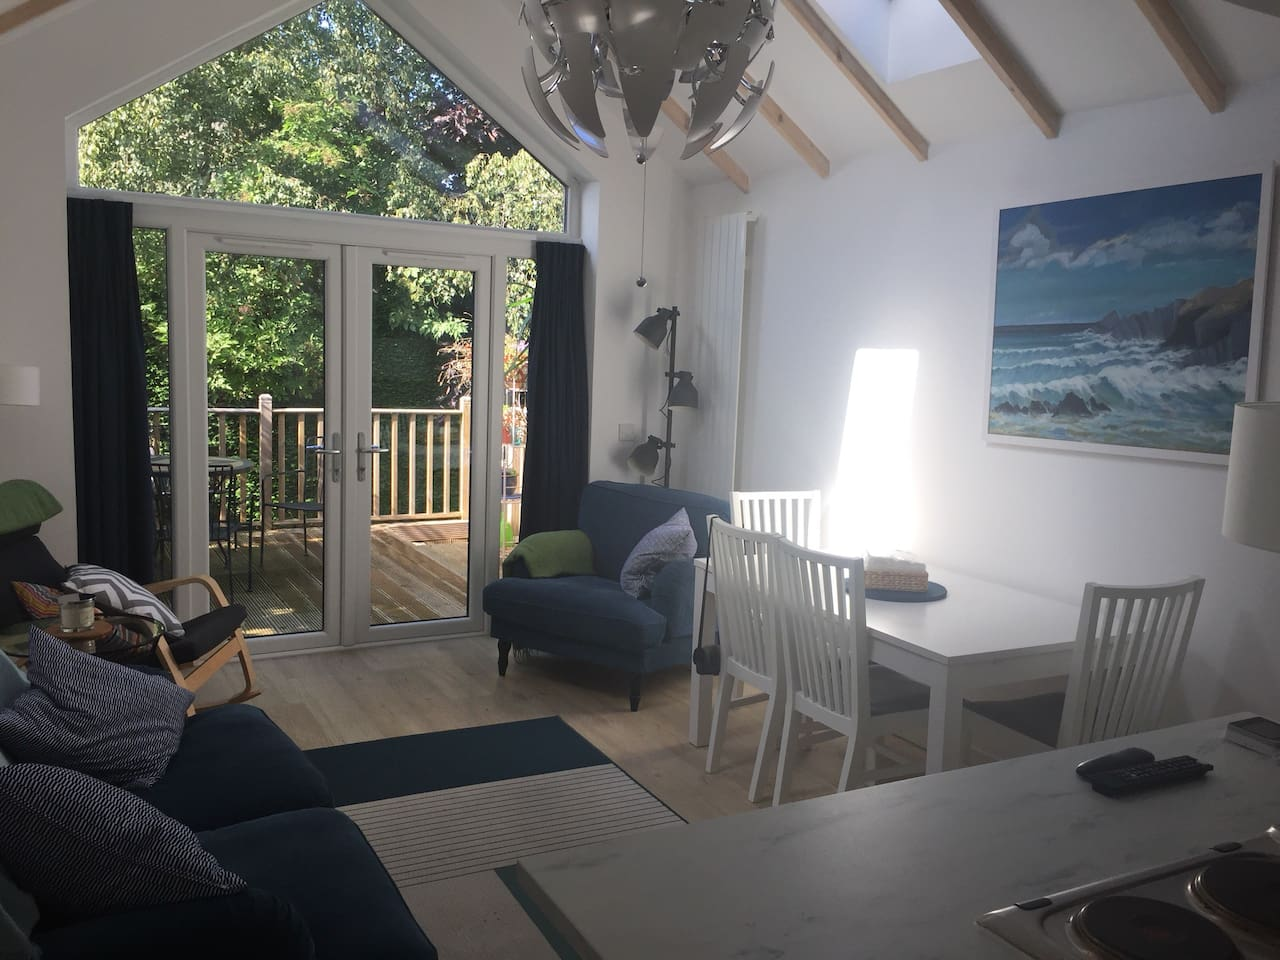 Sitting room looking out to the patio/decking